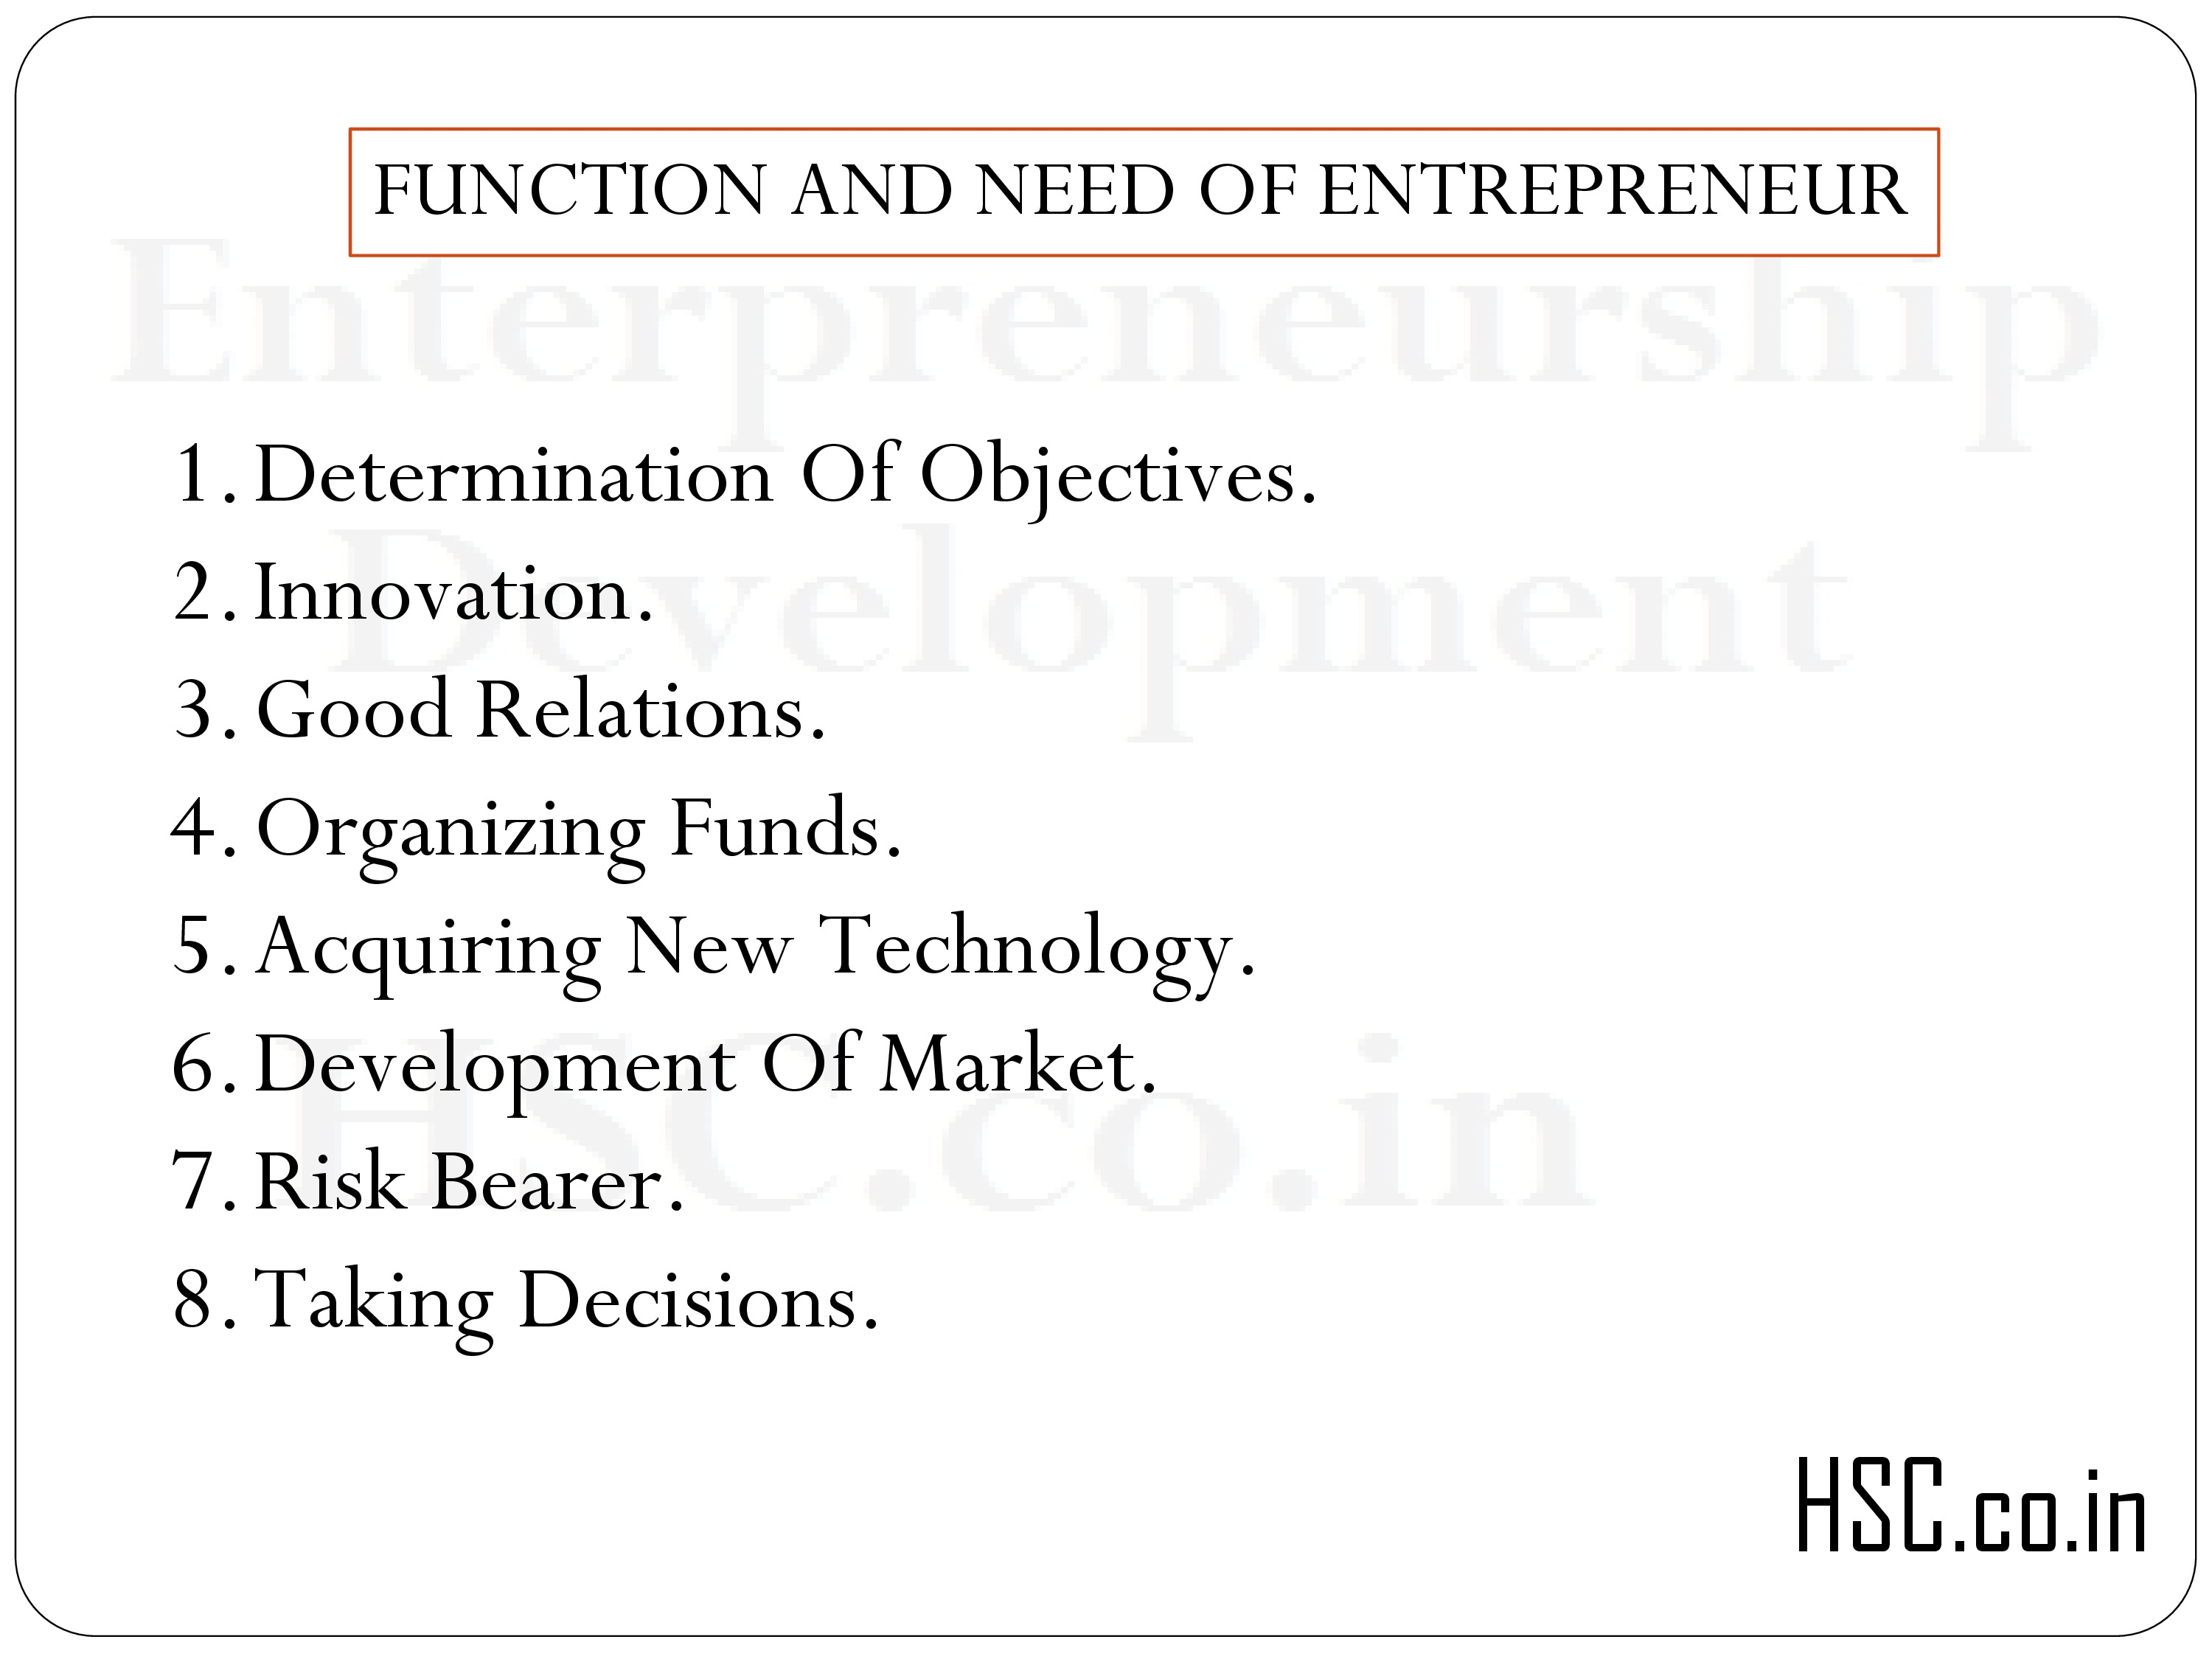 FUNCTION AND NEED OF ENTREPRENEUR